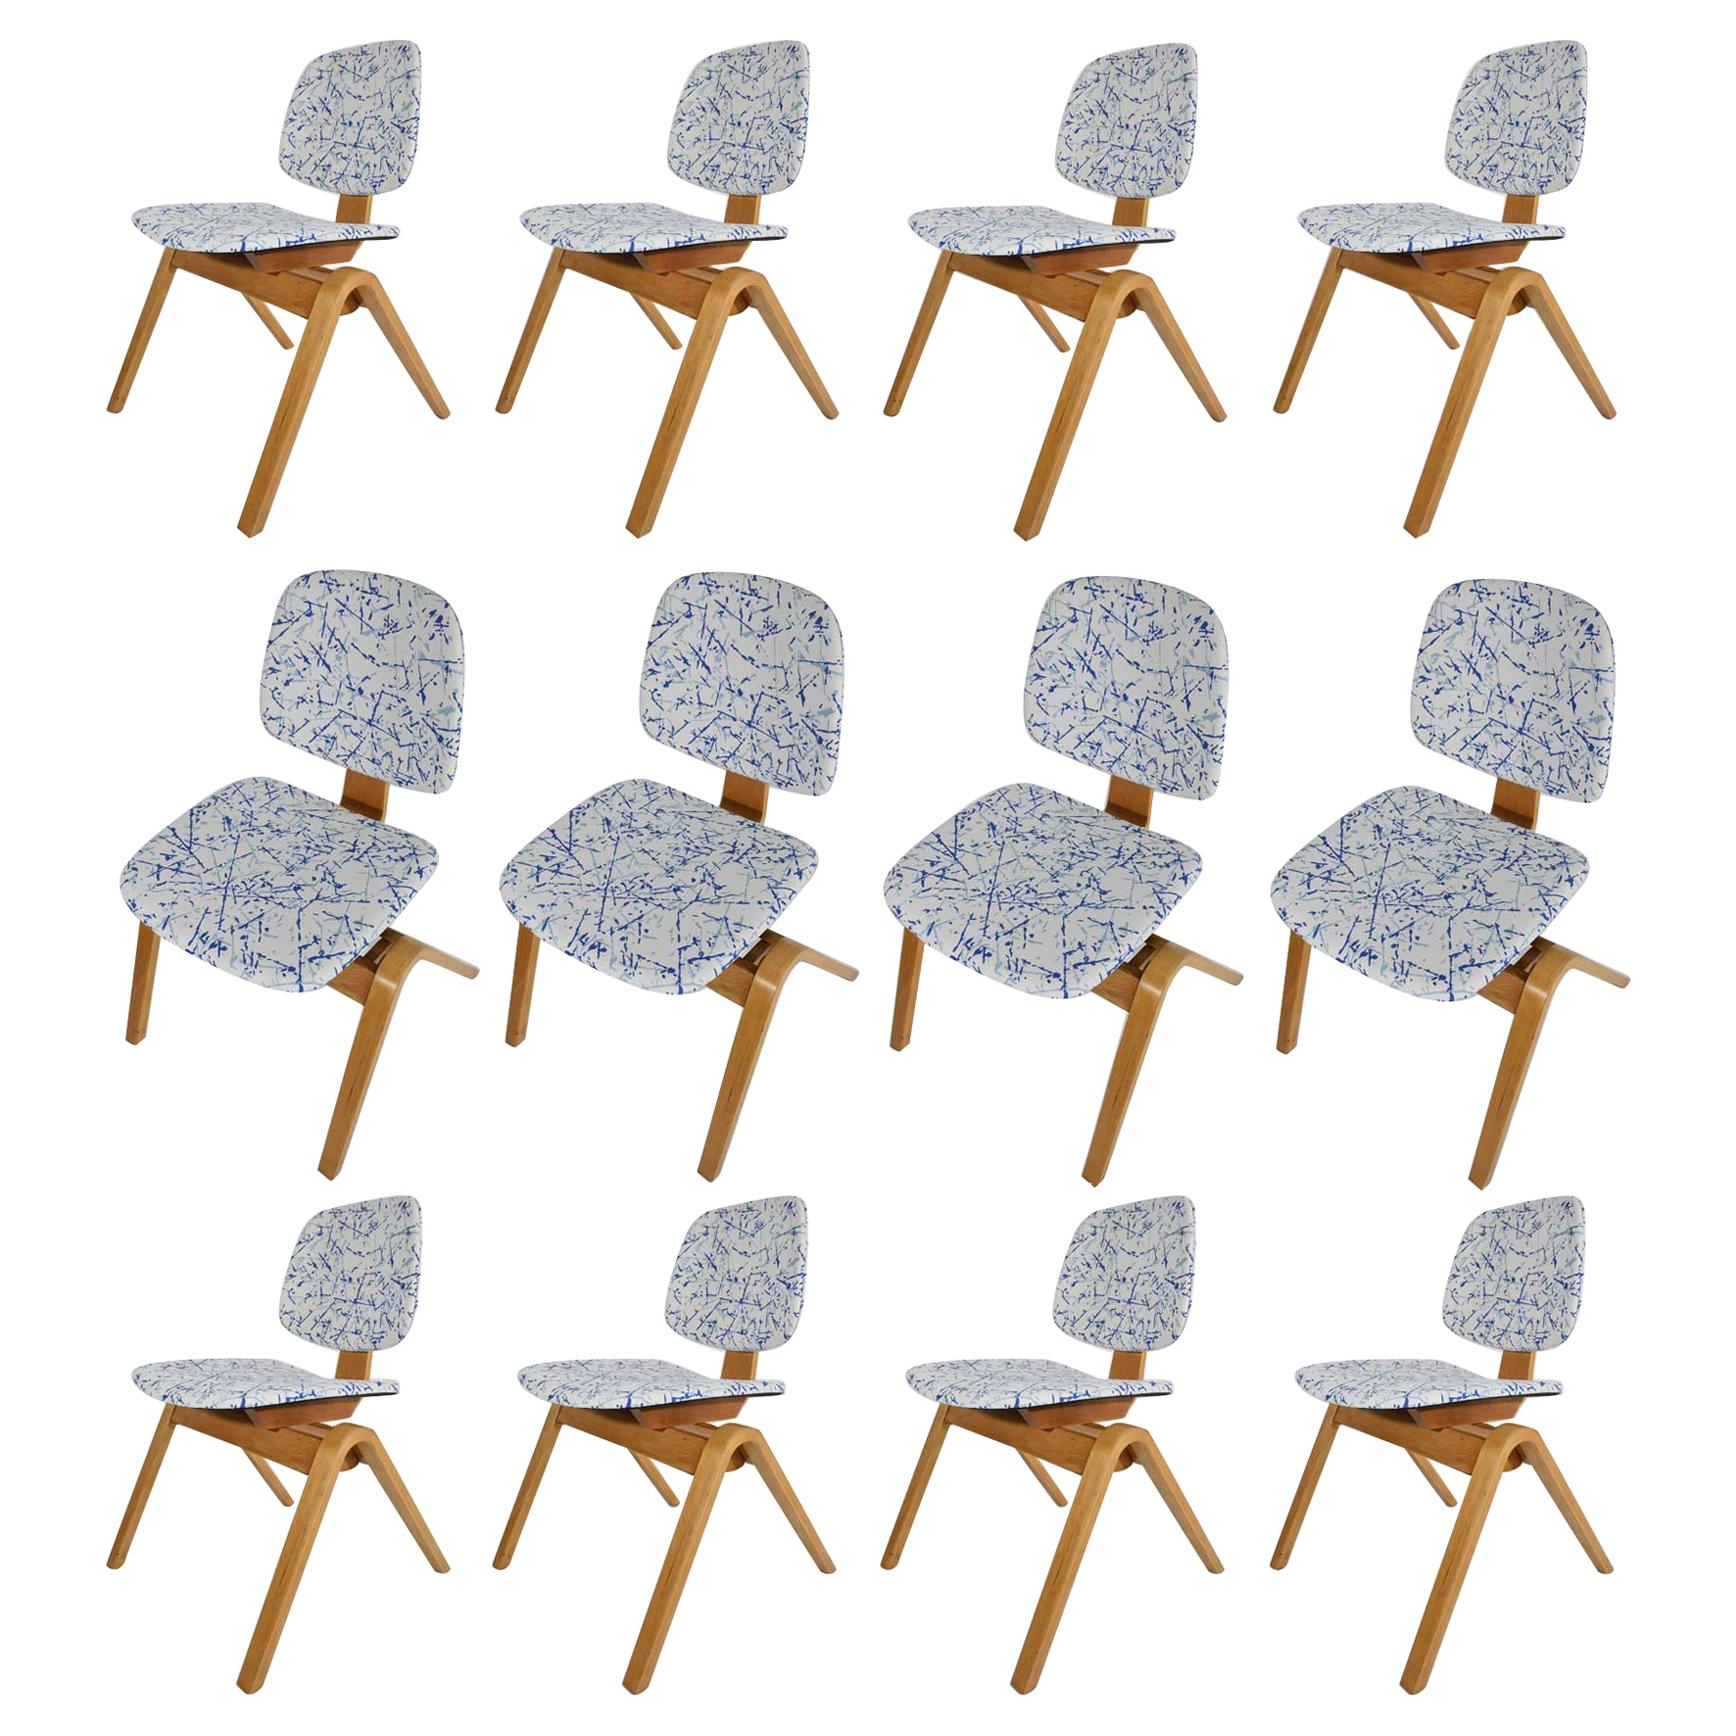 Thonet Dining Chairs, Set of 12